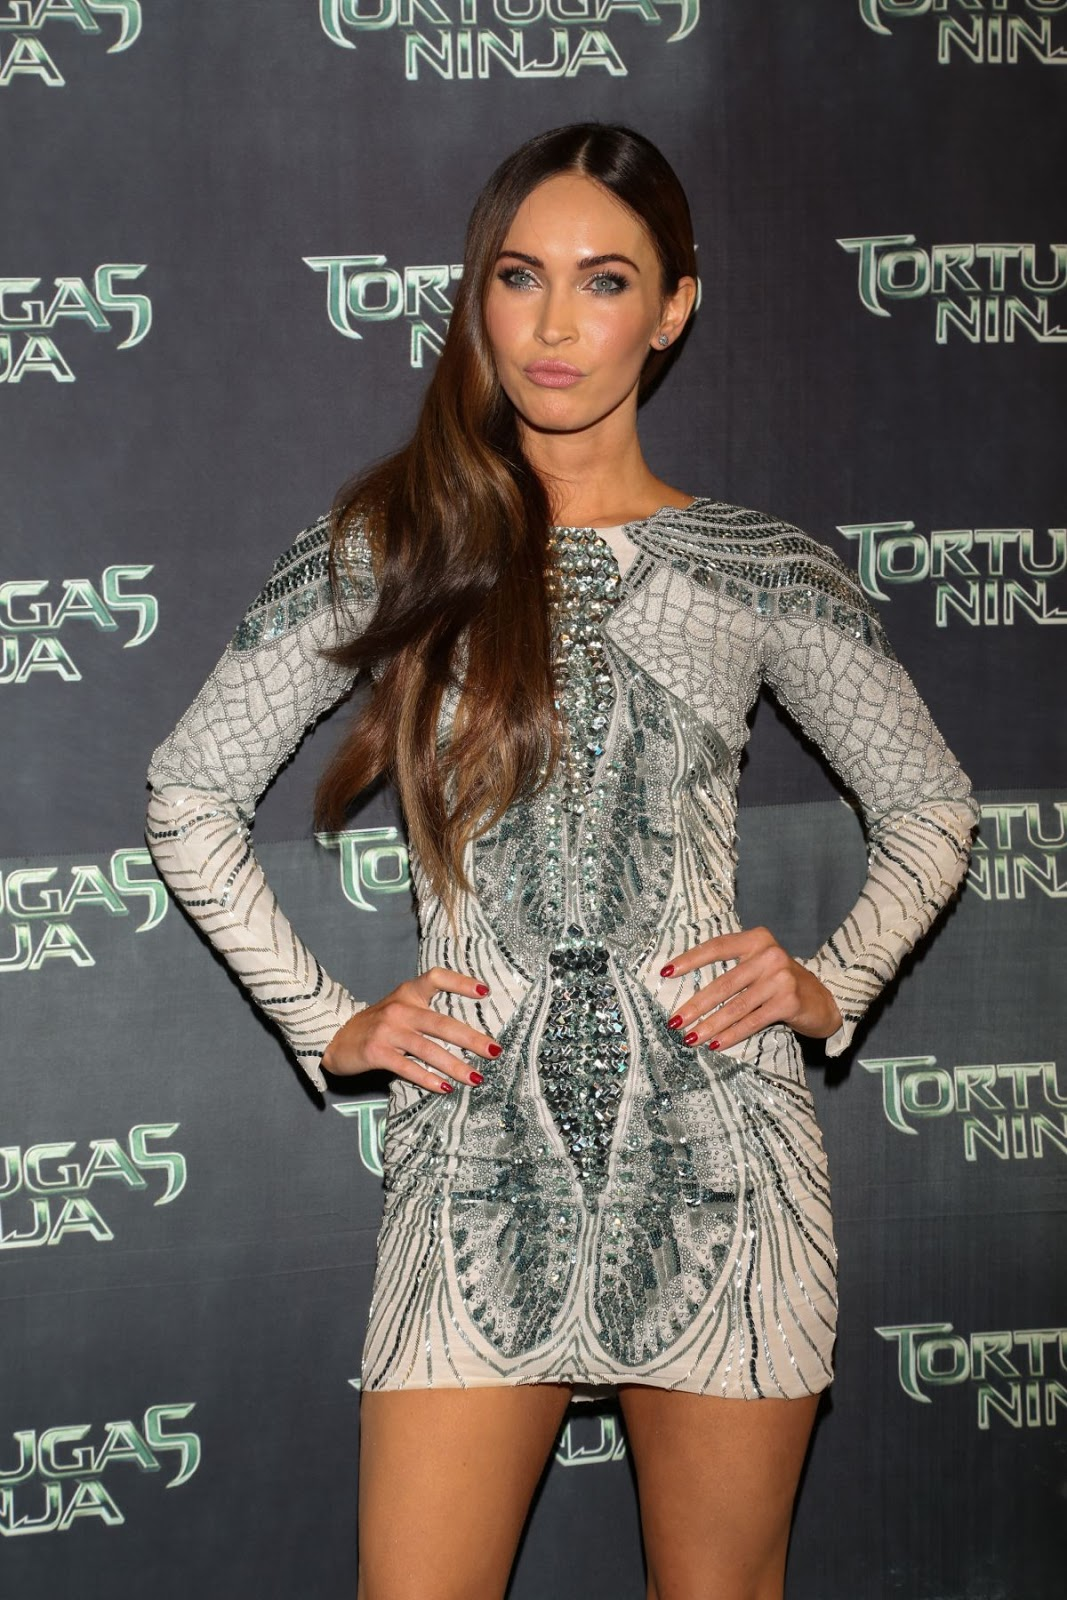 Megan Fox in Mini-dress at Teenage Mutant Ninja Turtles Mexico Premiere